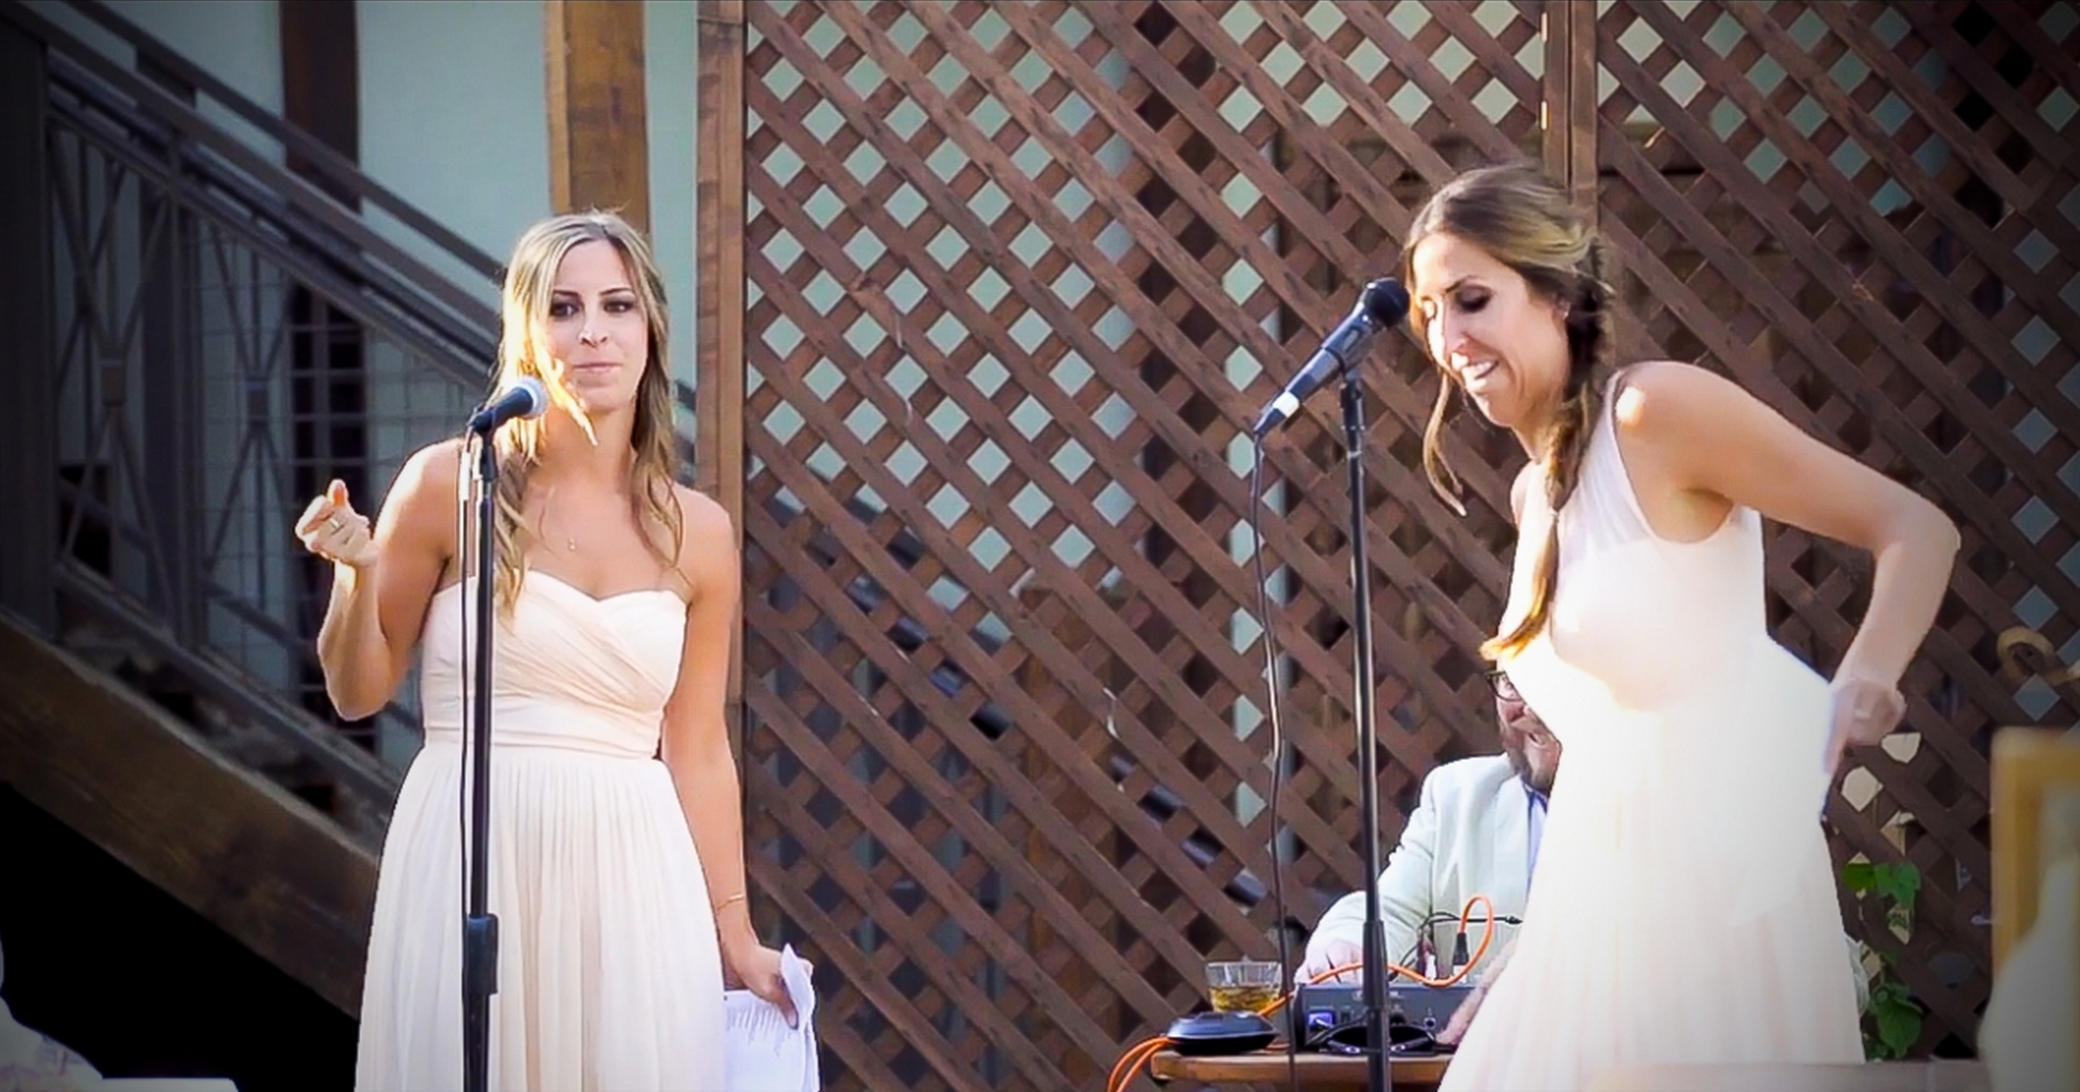 How Long Should A Grooms Speech Be: These Sisters Get Up To Deliver A Toast, But The Bride And